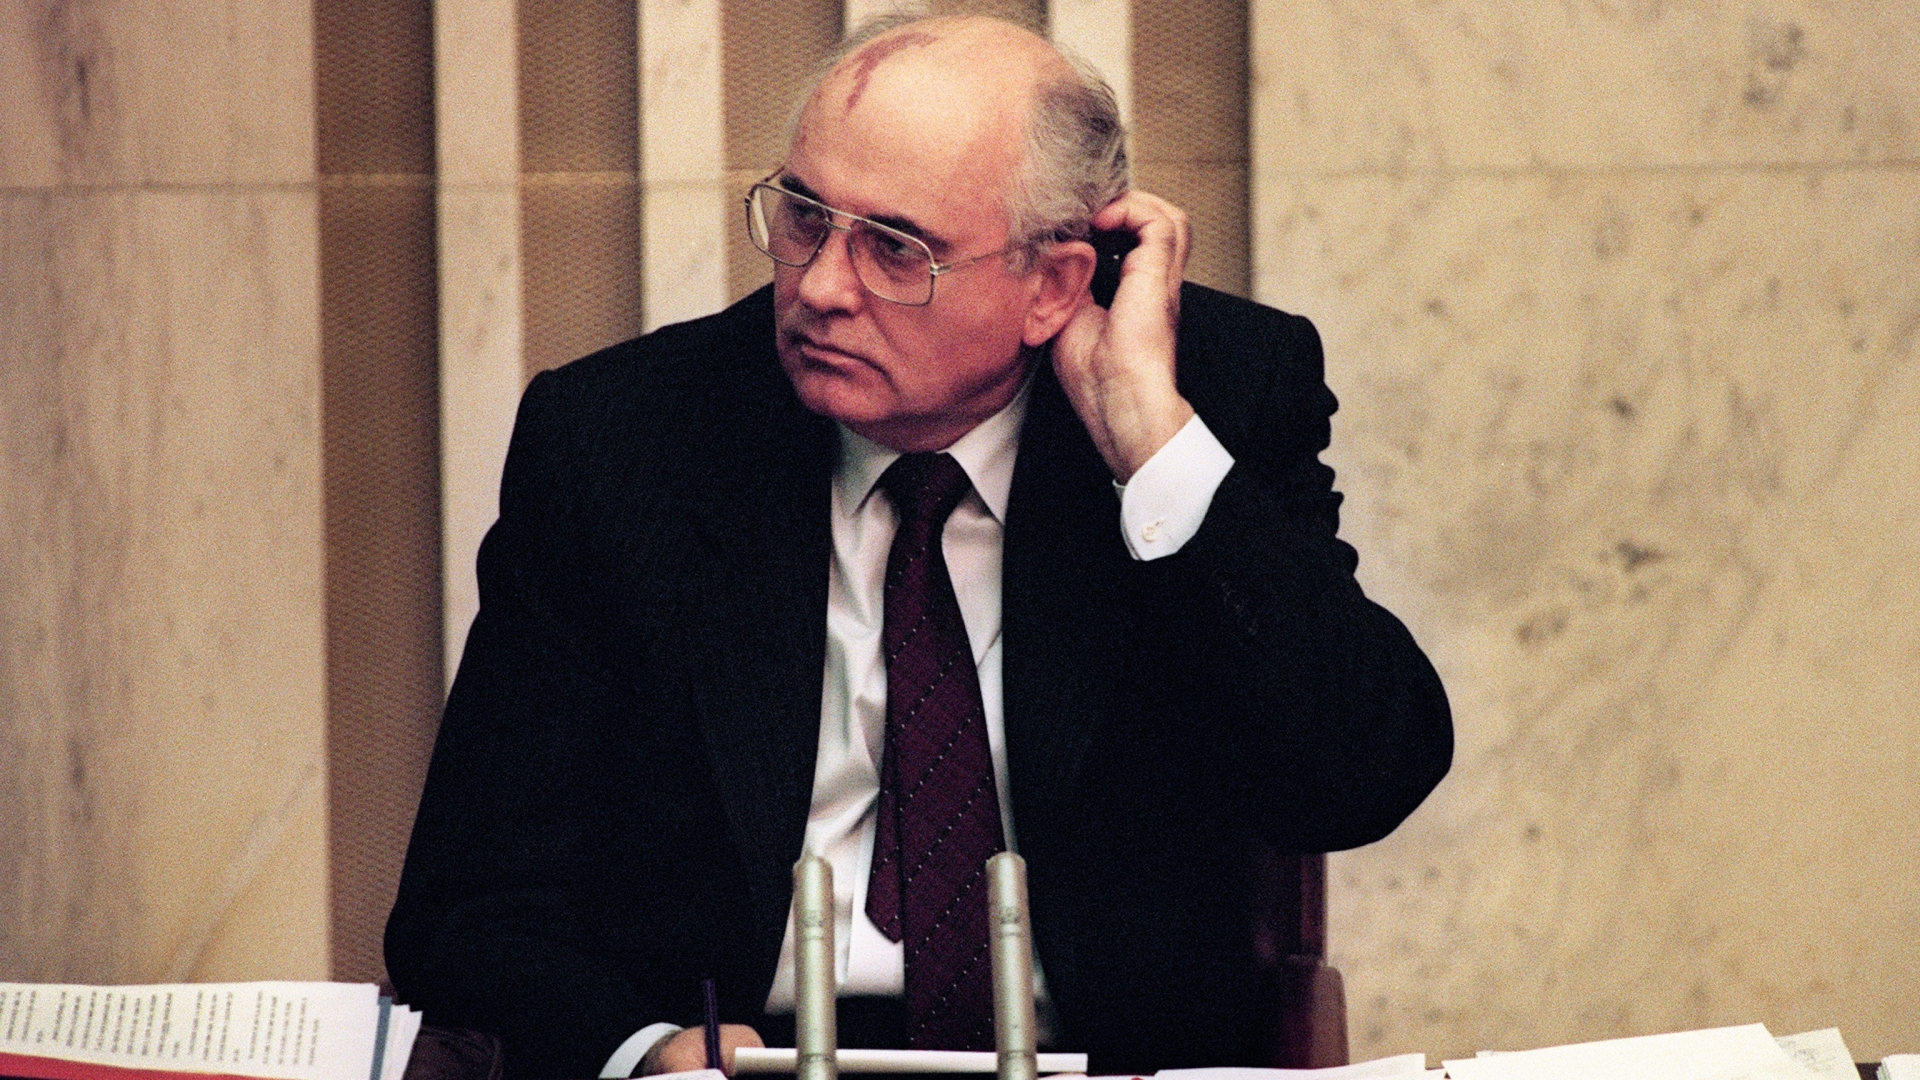 Soviet President Mikhail Gorbachev on the second day of the extraordinary session of the Supreme Soviet in Moscow on August 27, 1991. He threatened to resign if the republics refused to sign a Union Treaty to hold the Soviet Union together. (Credit: Vitaly Armand/AFP/Getty Images)